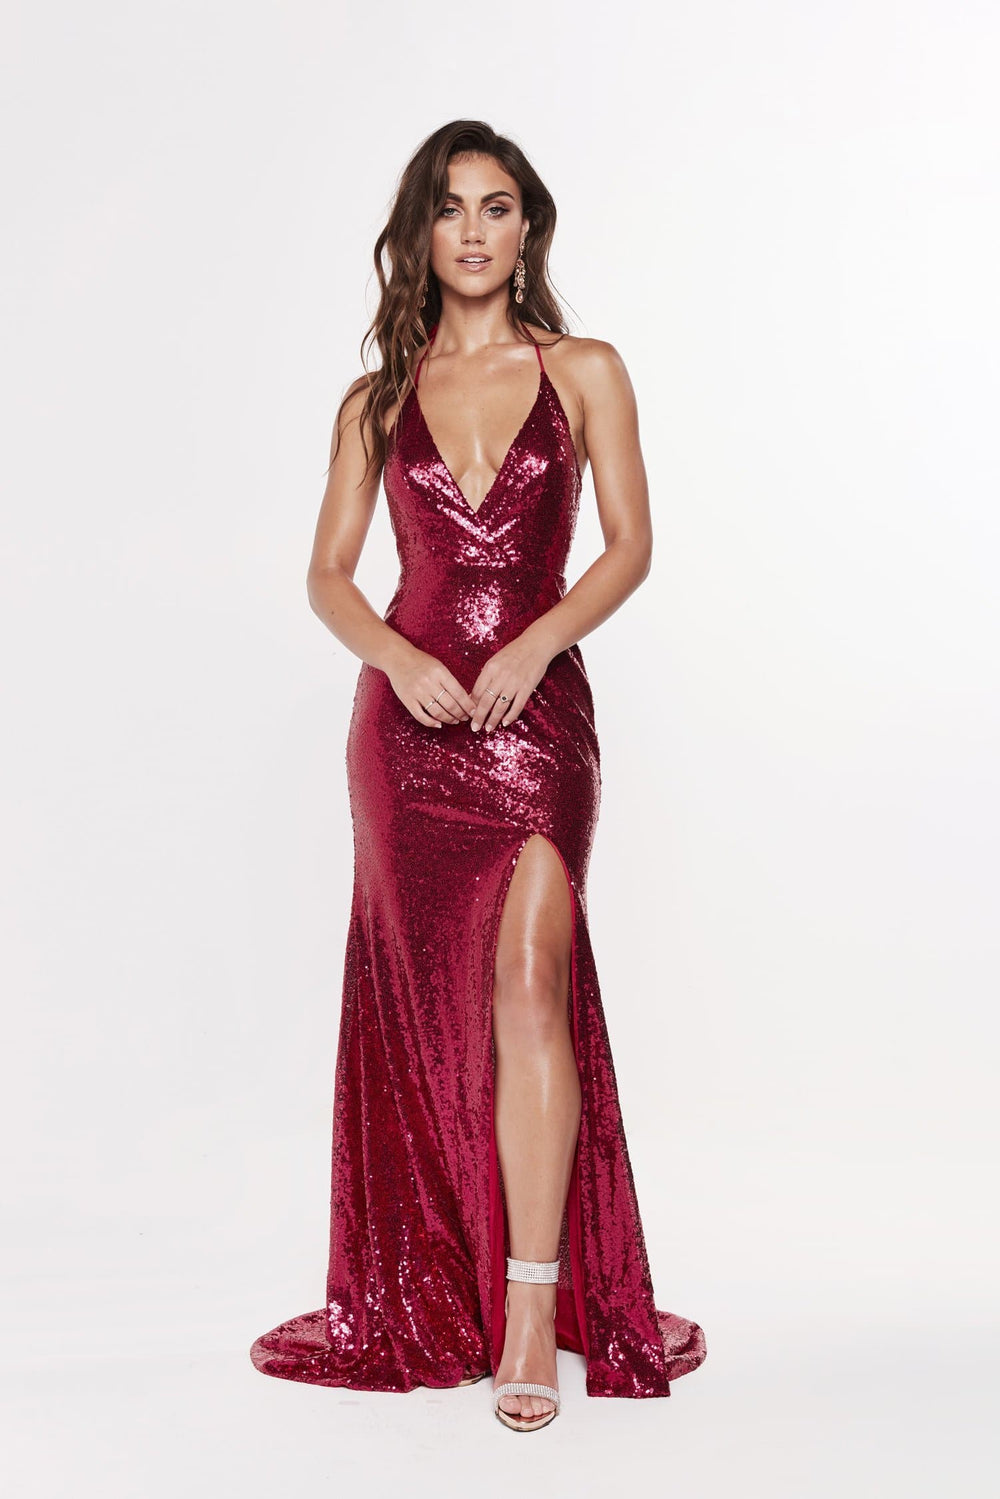 A&N Kylie- Cherry Sequin Dress with Low Back and Side Slit